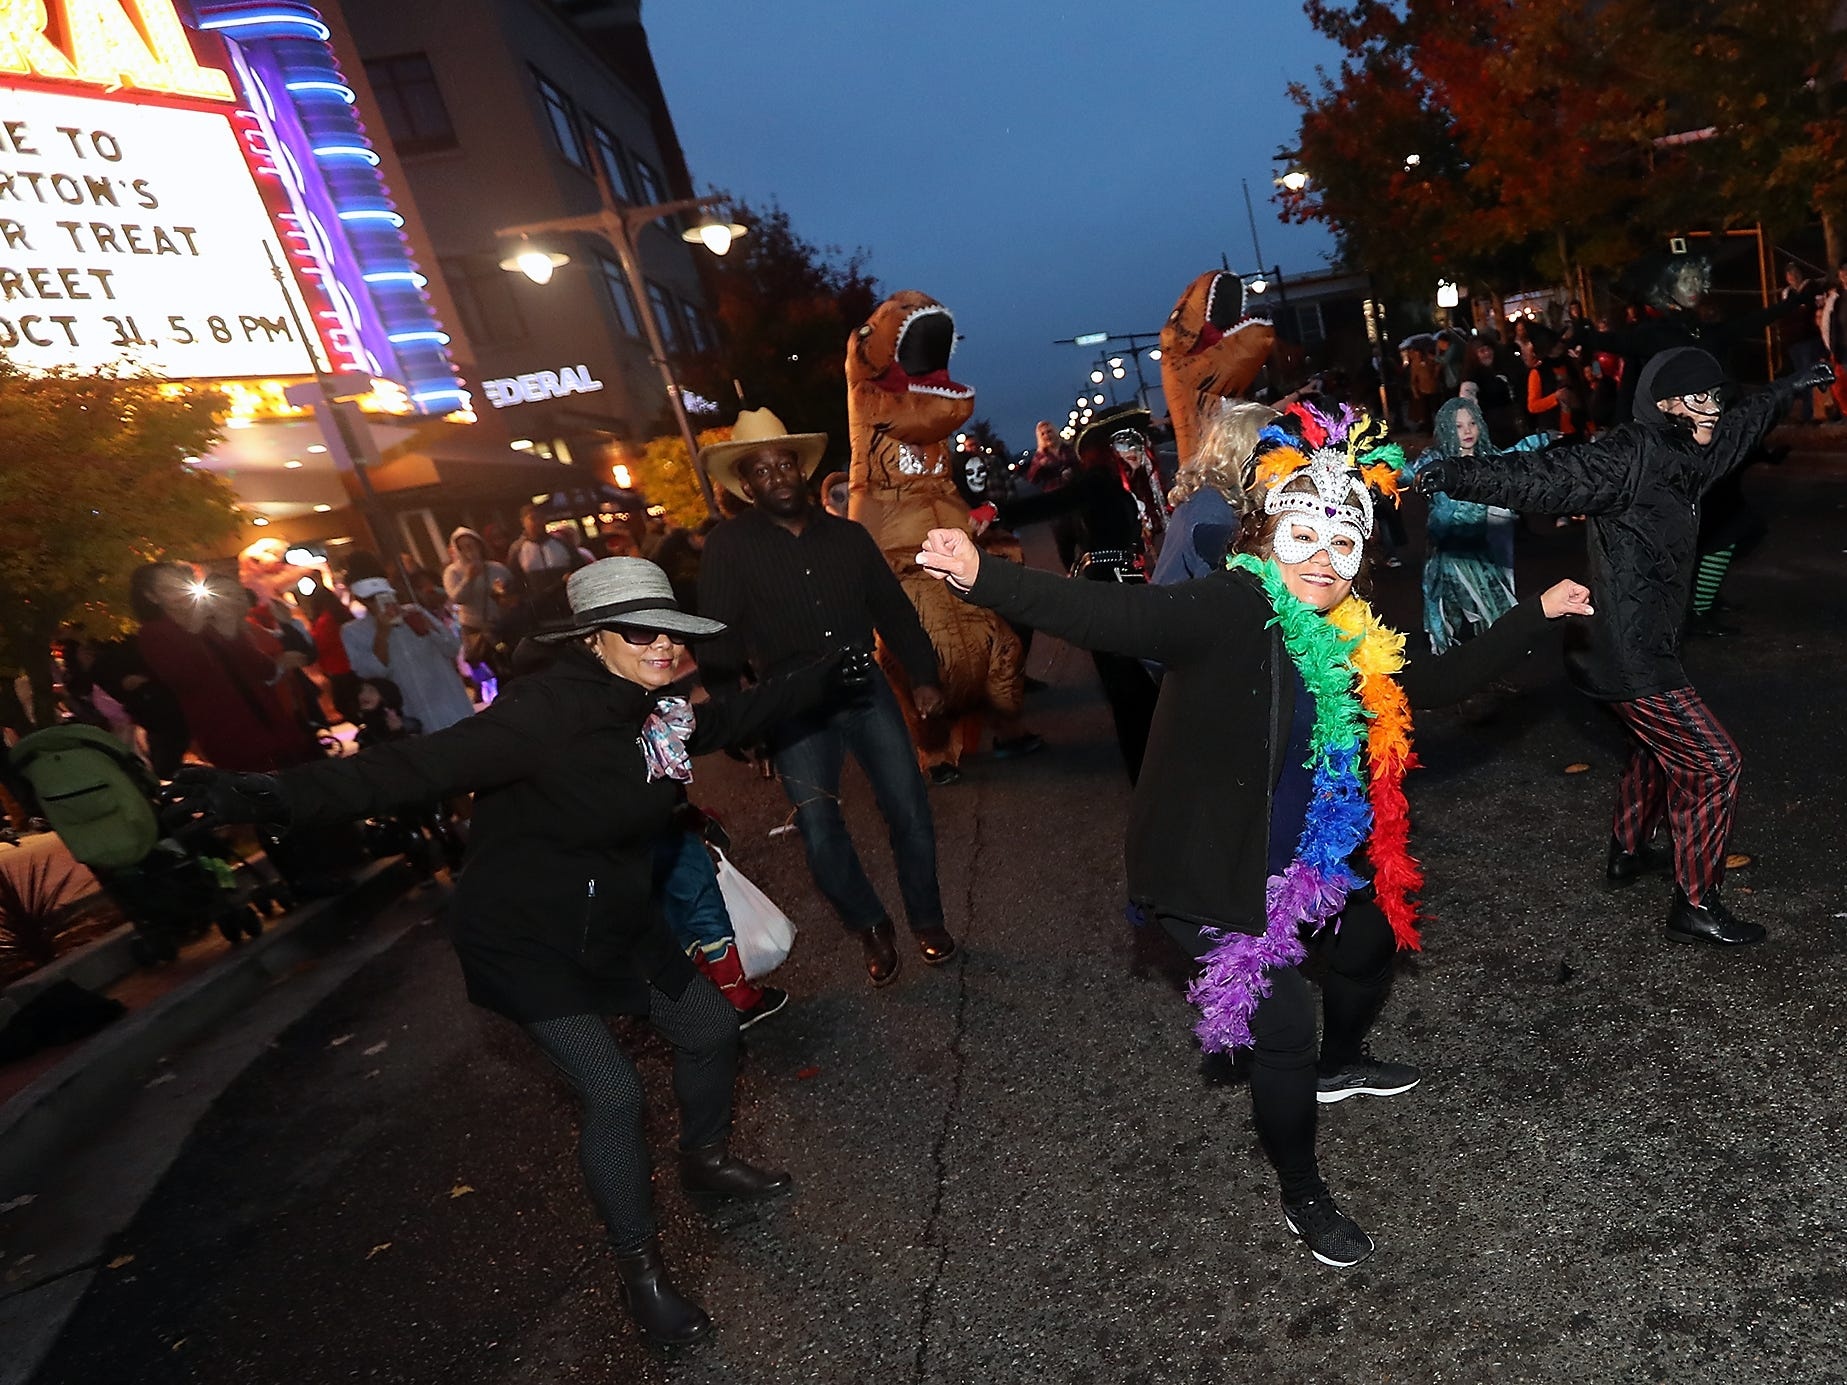 Thriller flash mob dancers perform in front of the Admiral at Downtown Bremerton's Trick or Treat Street on Wednesday, October 31, 2018.